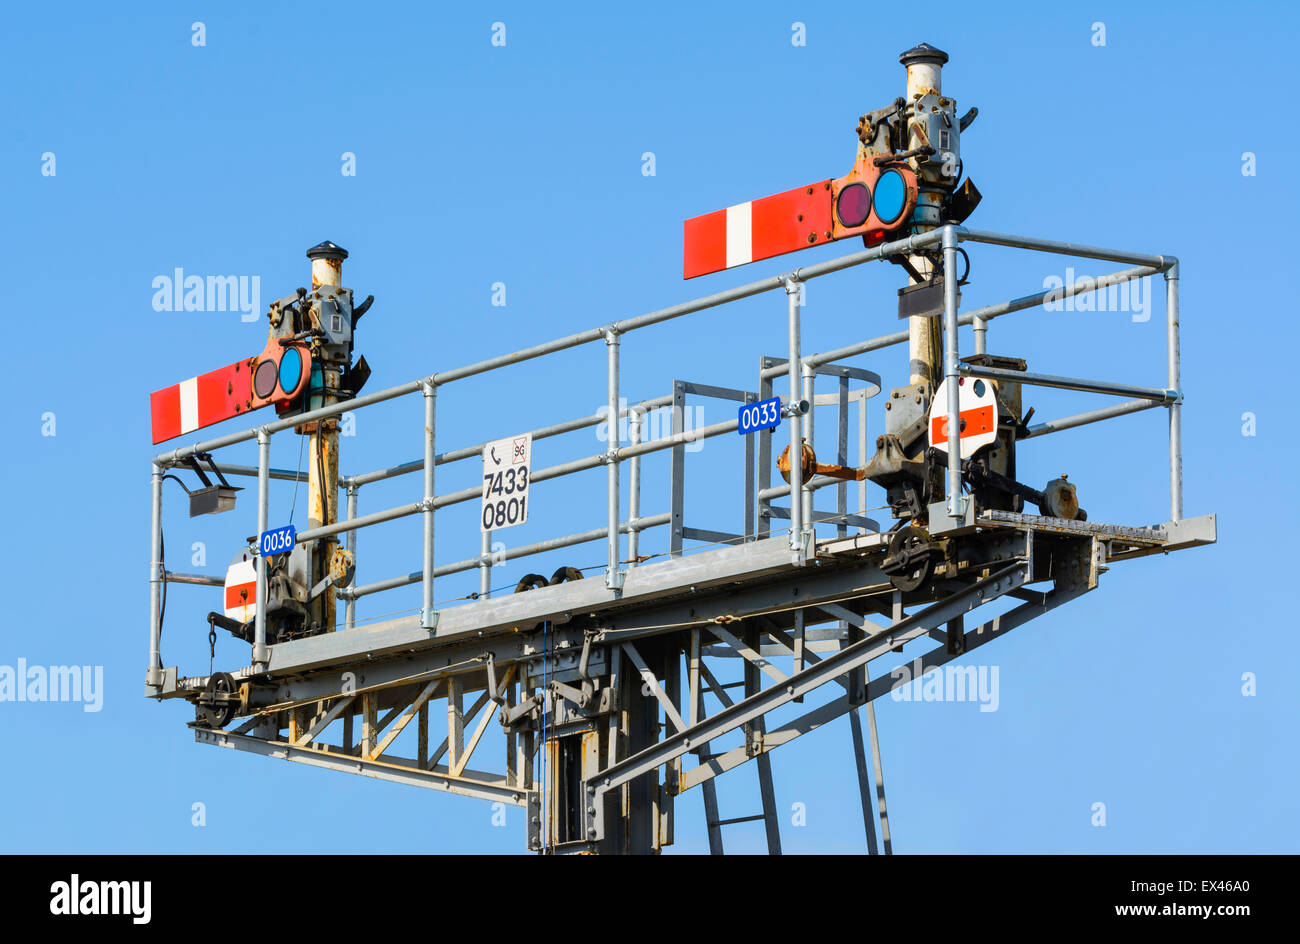 Semaphore stop signals on a British railway, both in the stop position, in England, UK. - Stock Image